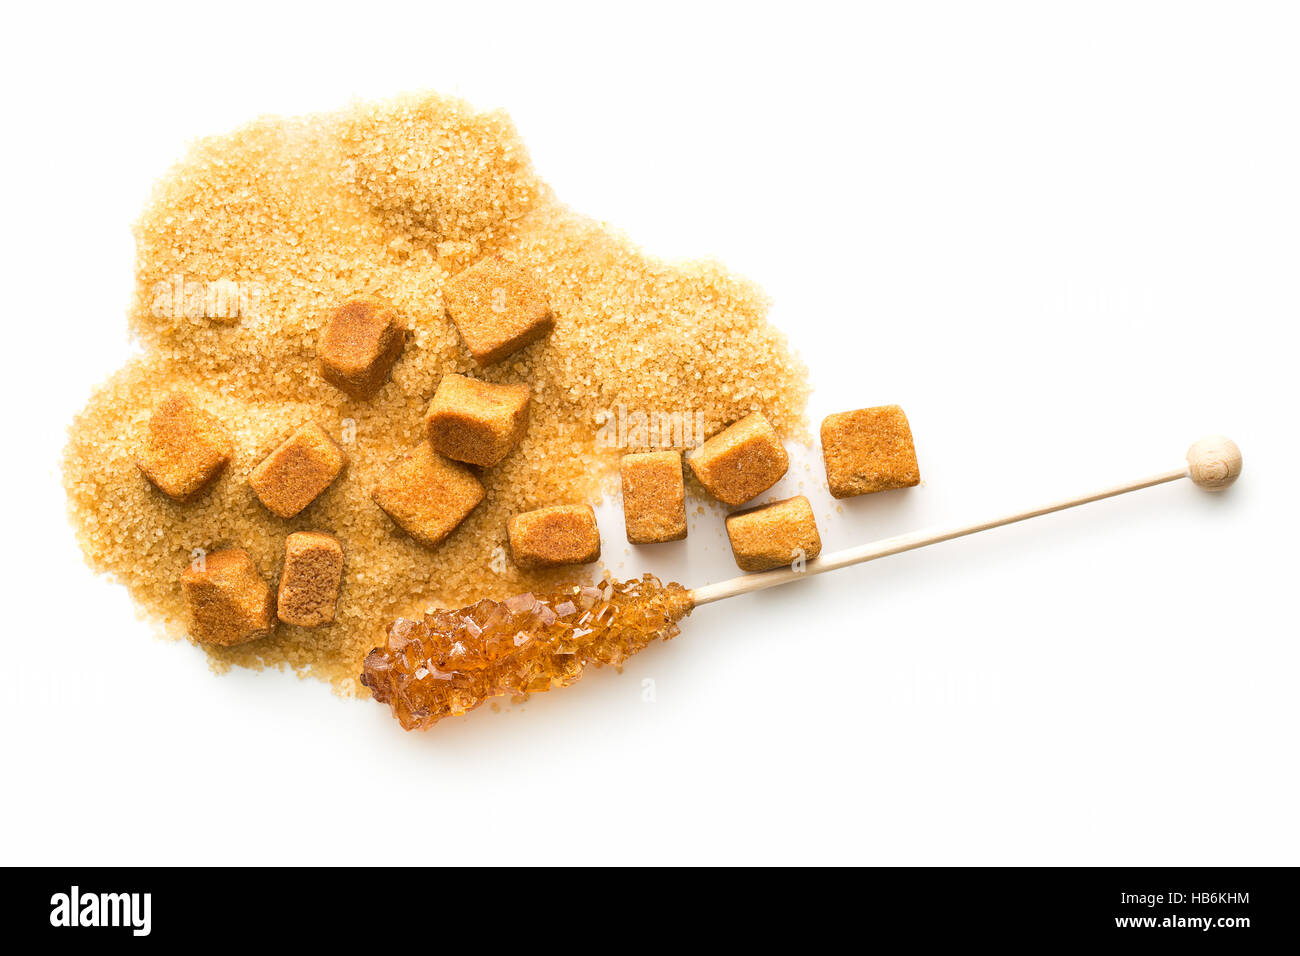 Brown amber sugar crystal on wooden stick and sugar cube isolated on white background. - Stock Image